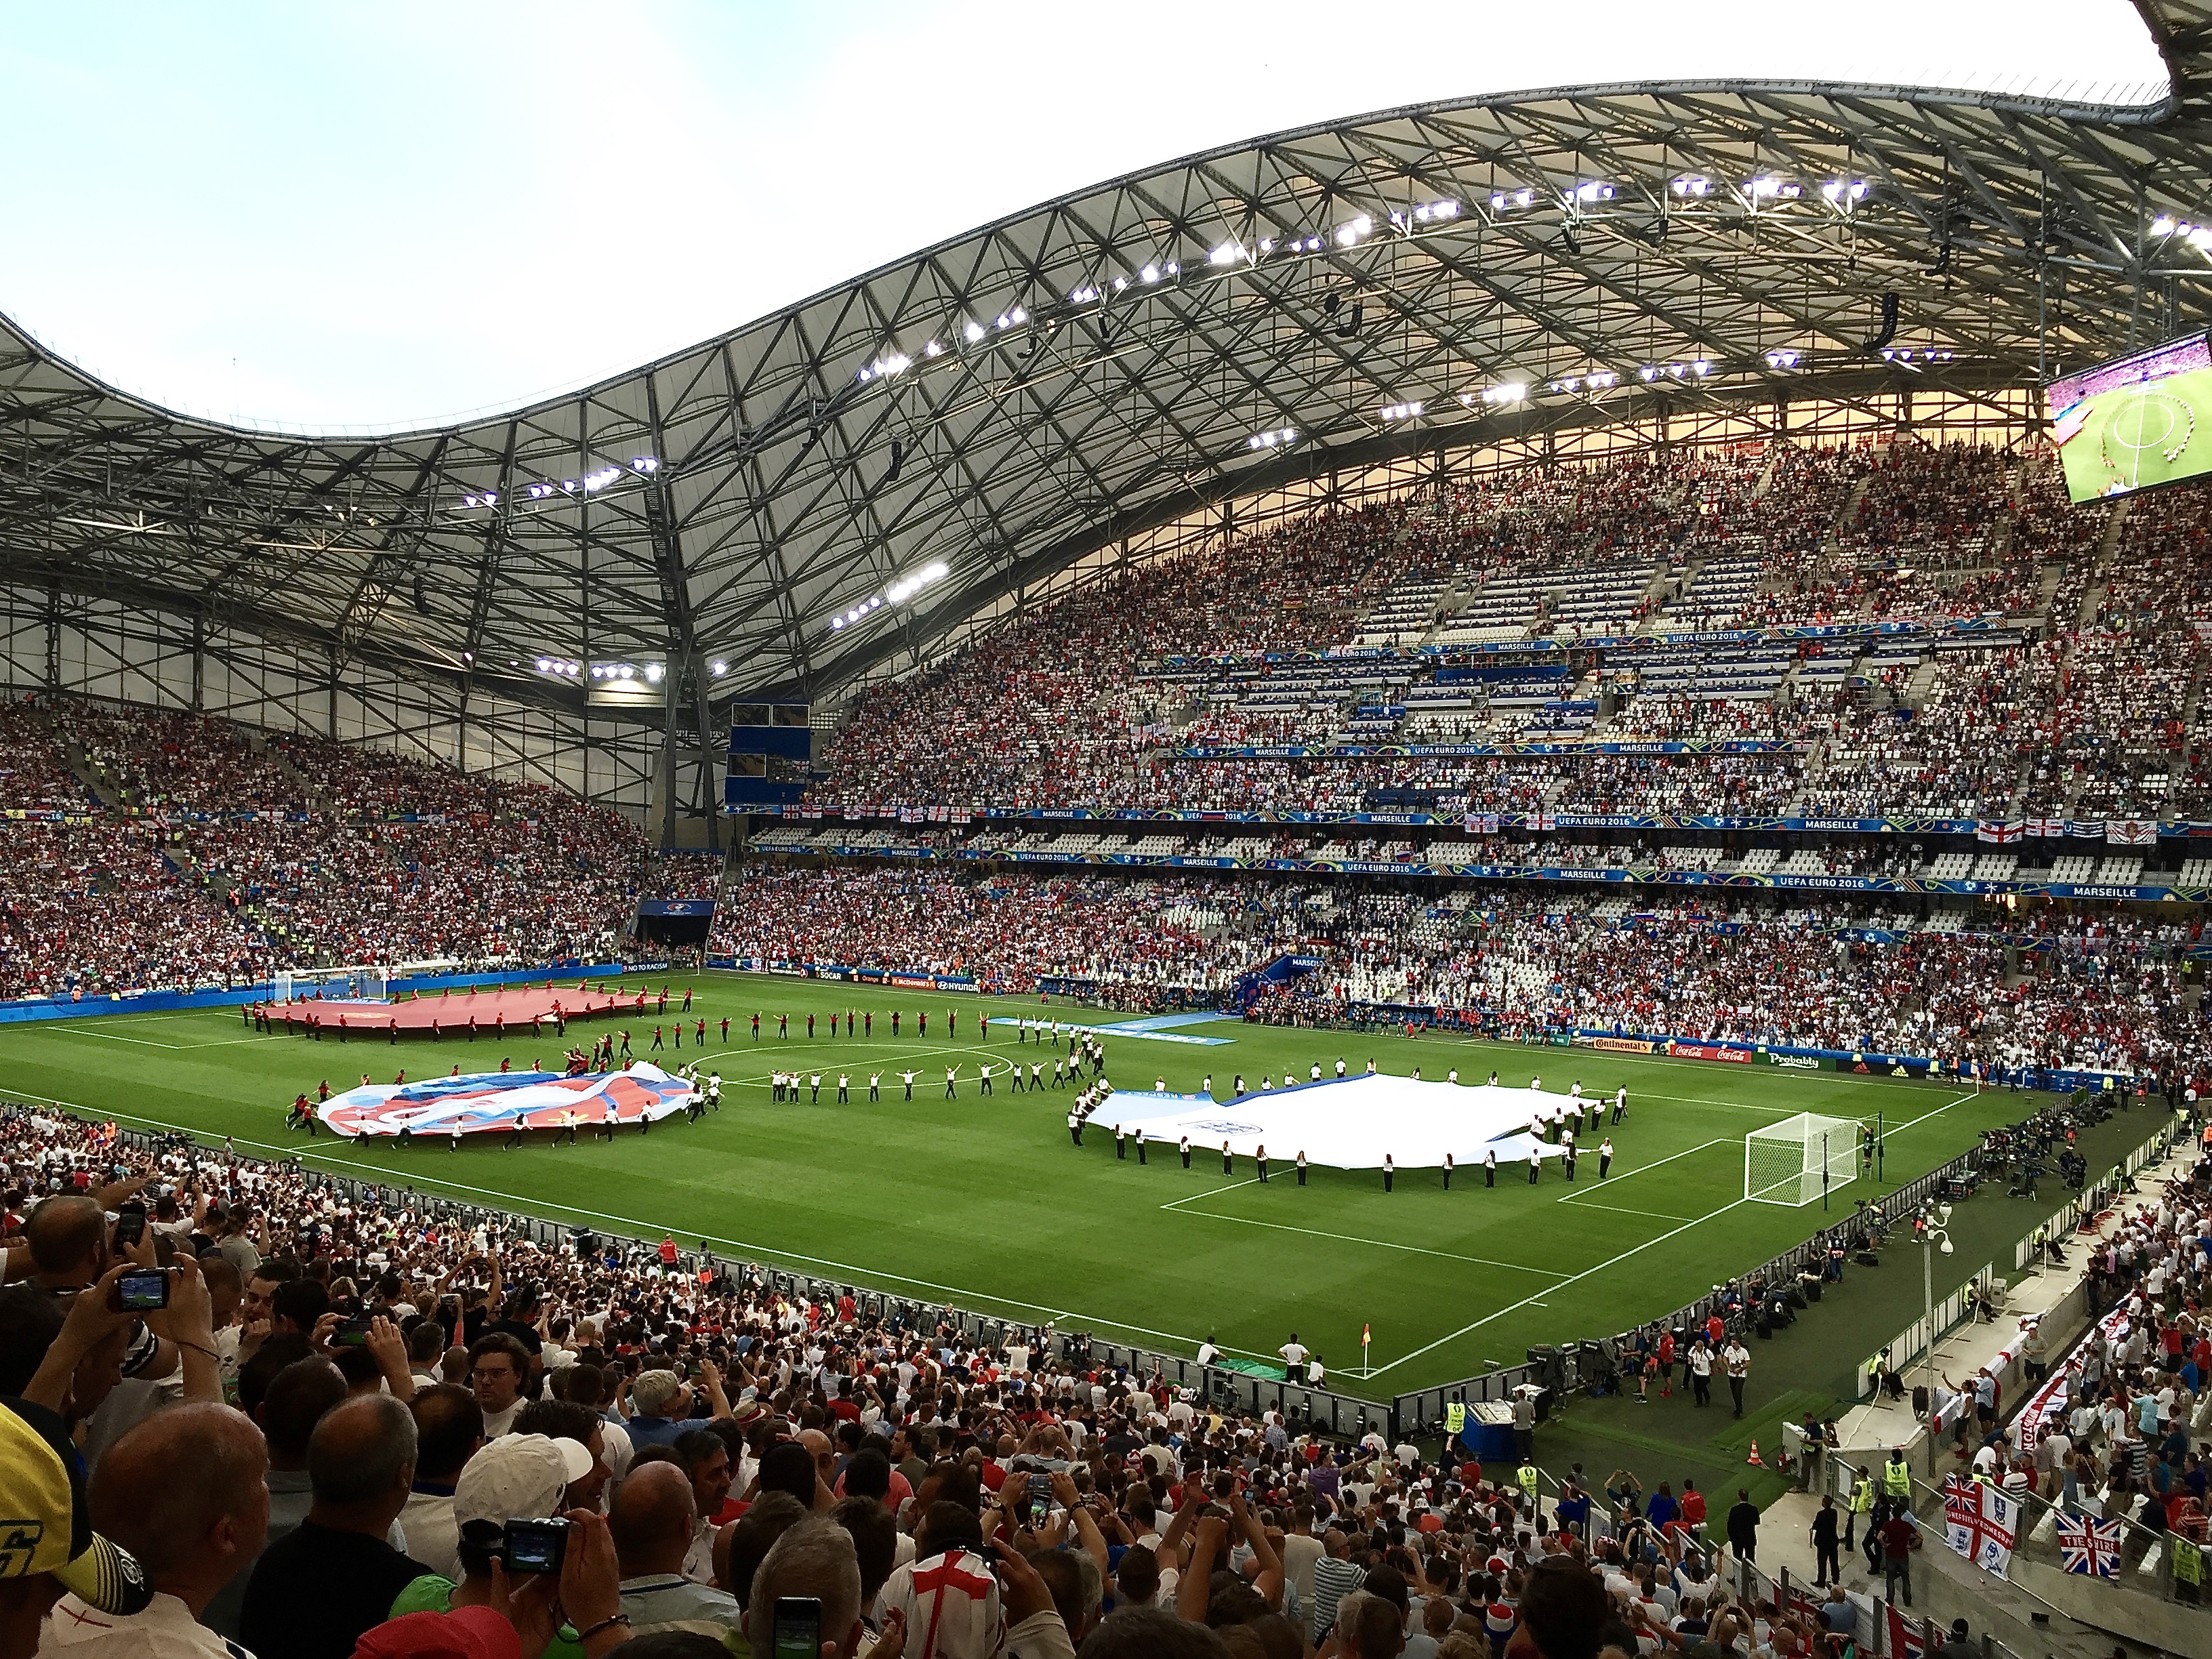 Image from England v. Russia at Euro2016 in Marseille, France